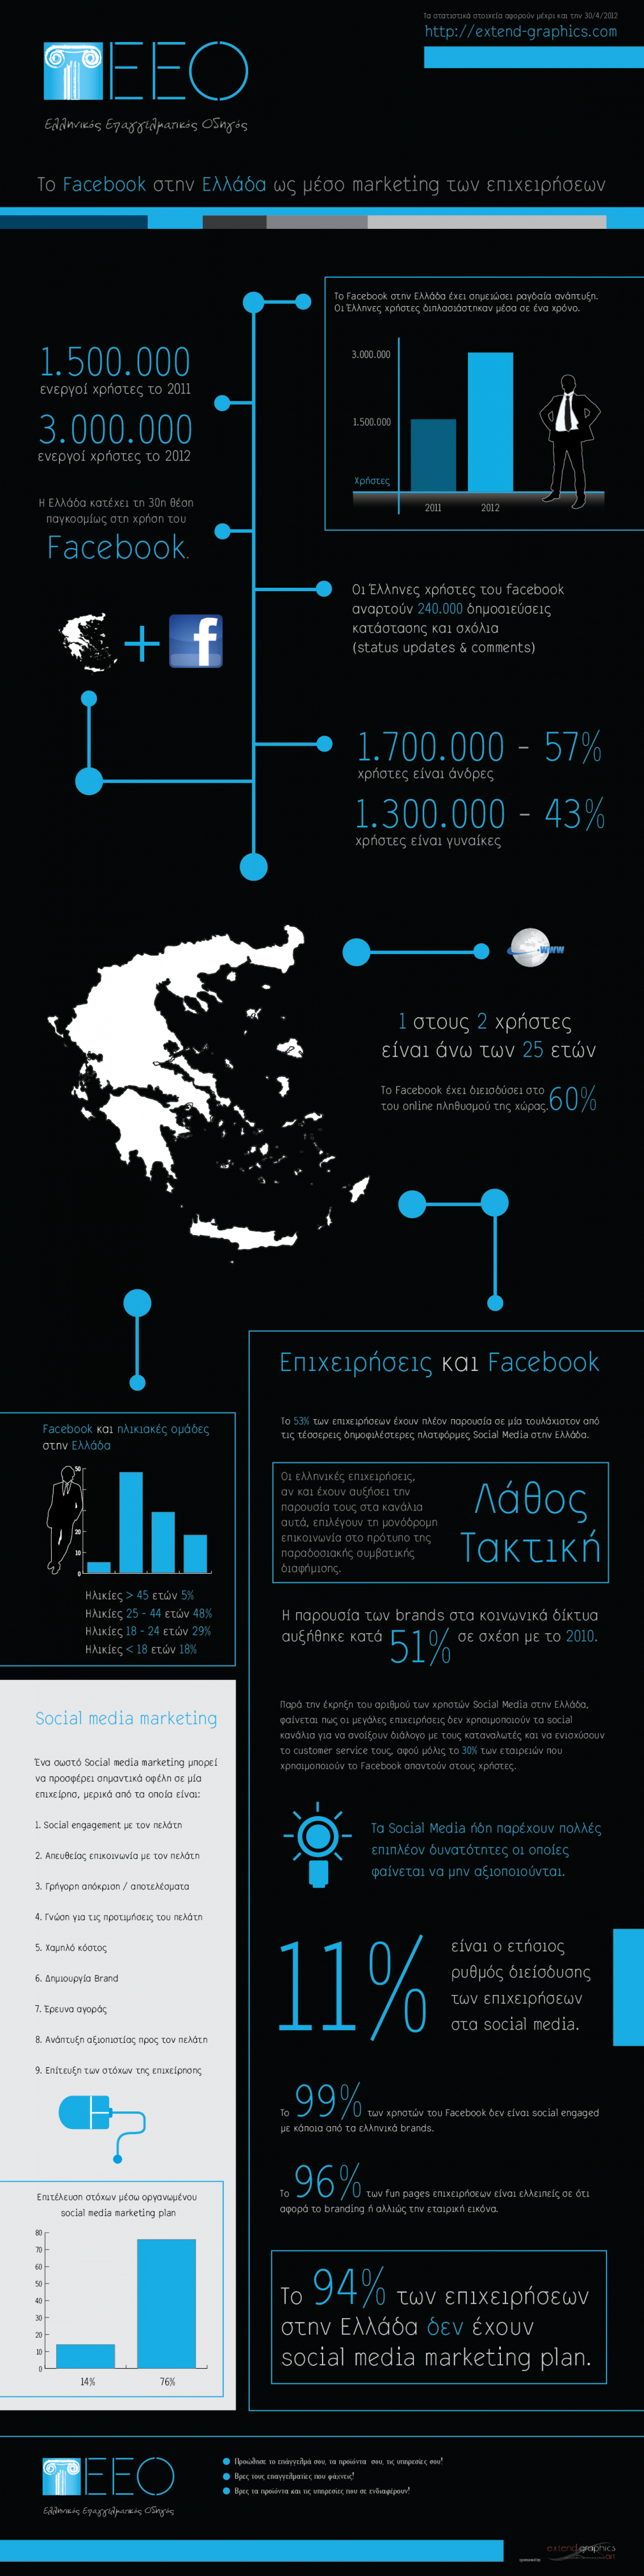 Facebook Use in Greece Infographic